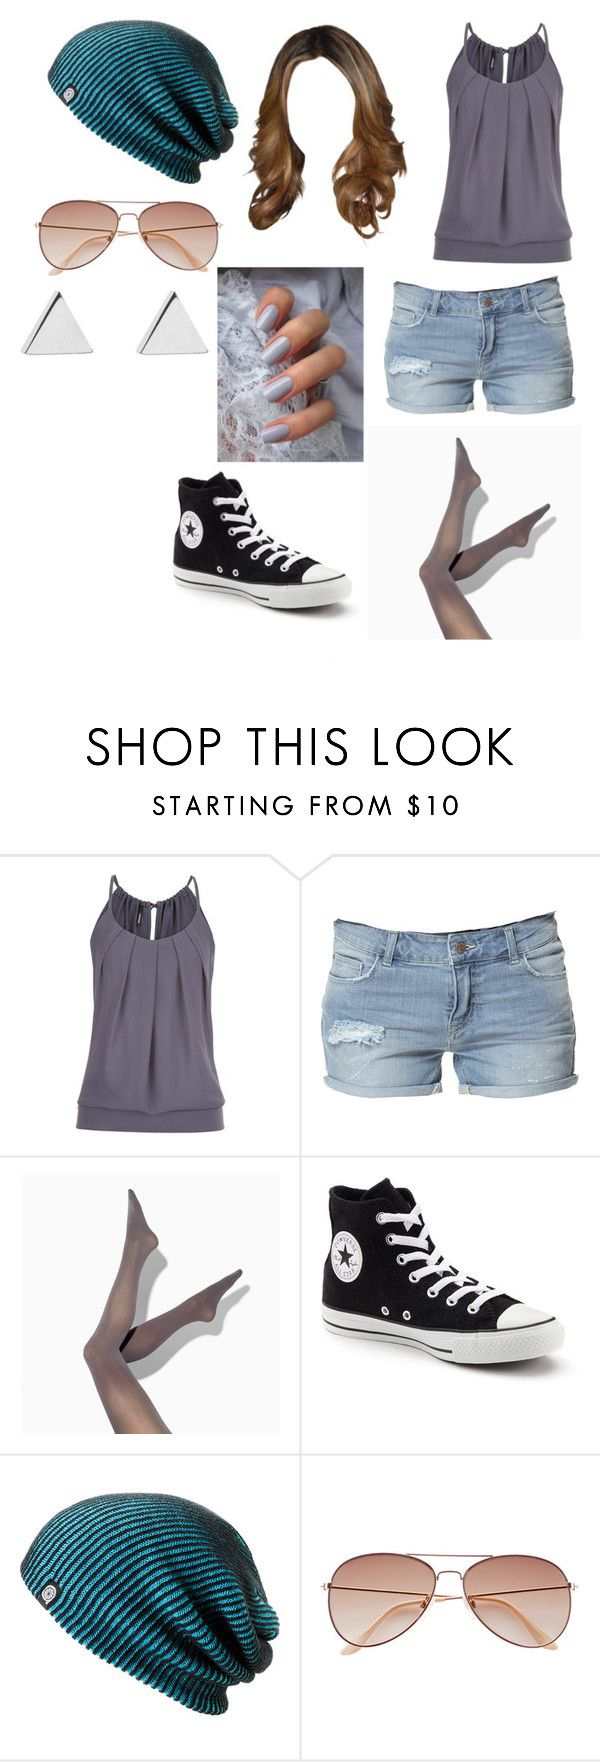 """""""Untitled #10610"""" by iamdreamchaser ❤ liked on Polyvore featuring maurices, Zara, Simply Vera, Converse, Avenue, H&M and Jennifer Meyer Jewelry"""